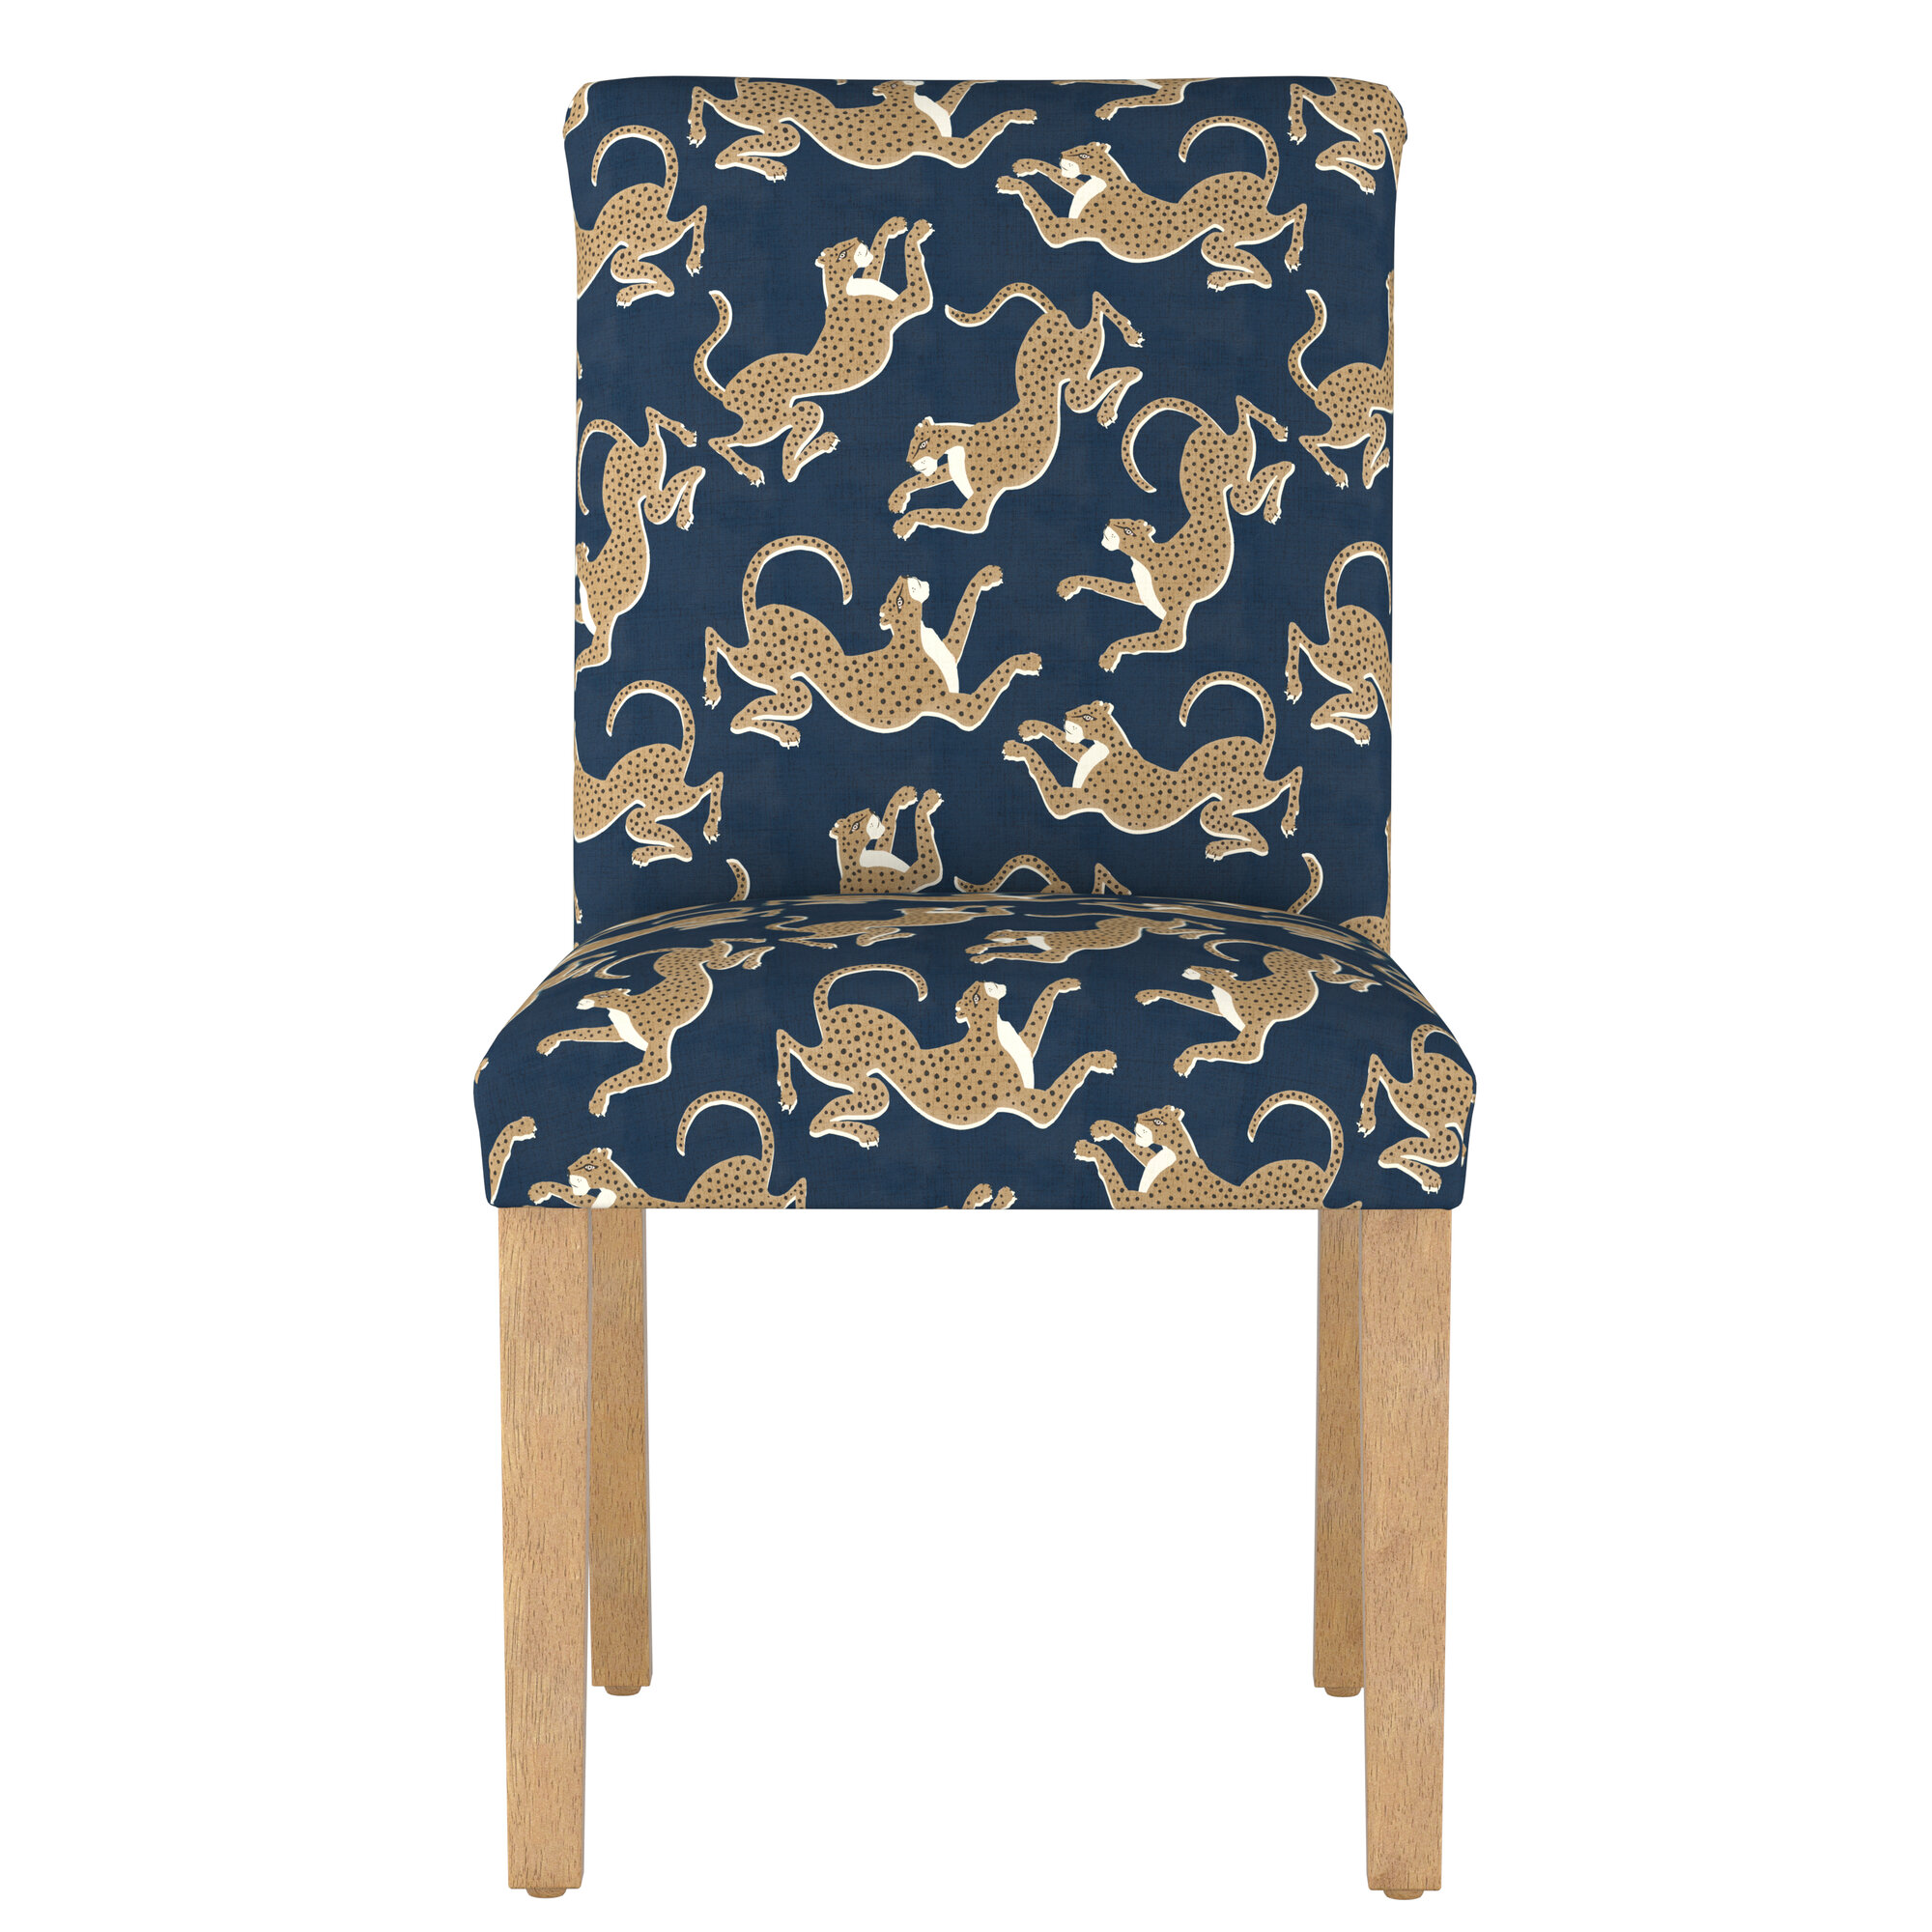 Details About Bloomsbury Market Malaya Leopard Upholstered Dining Chair